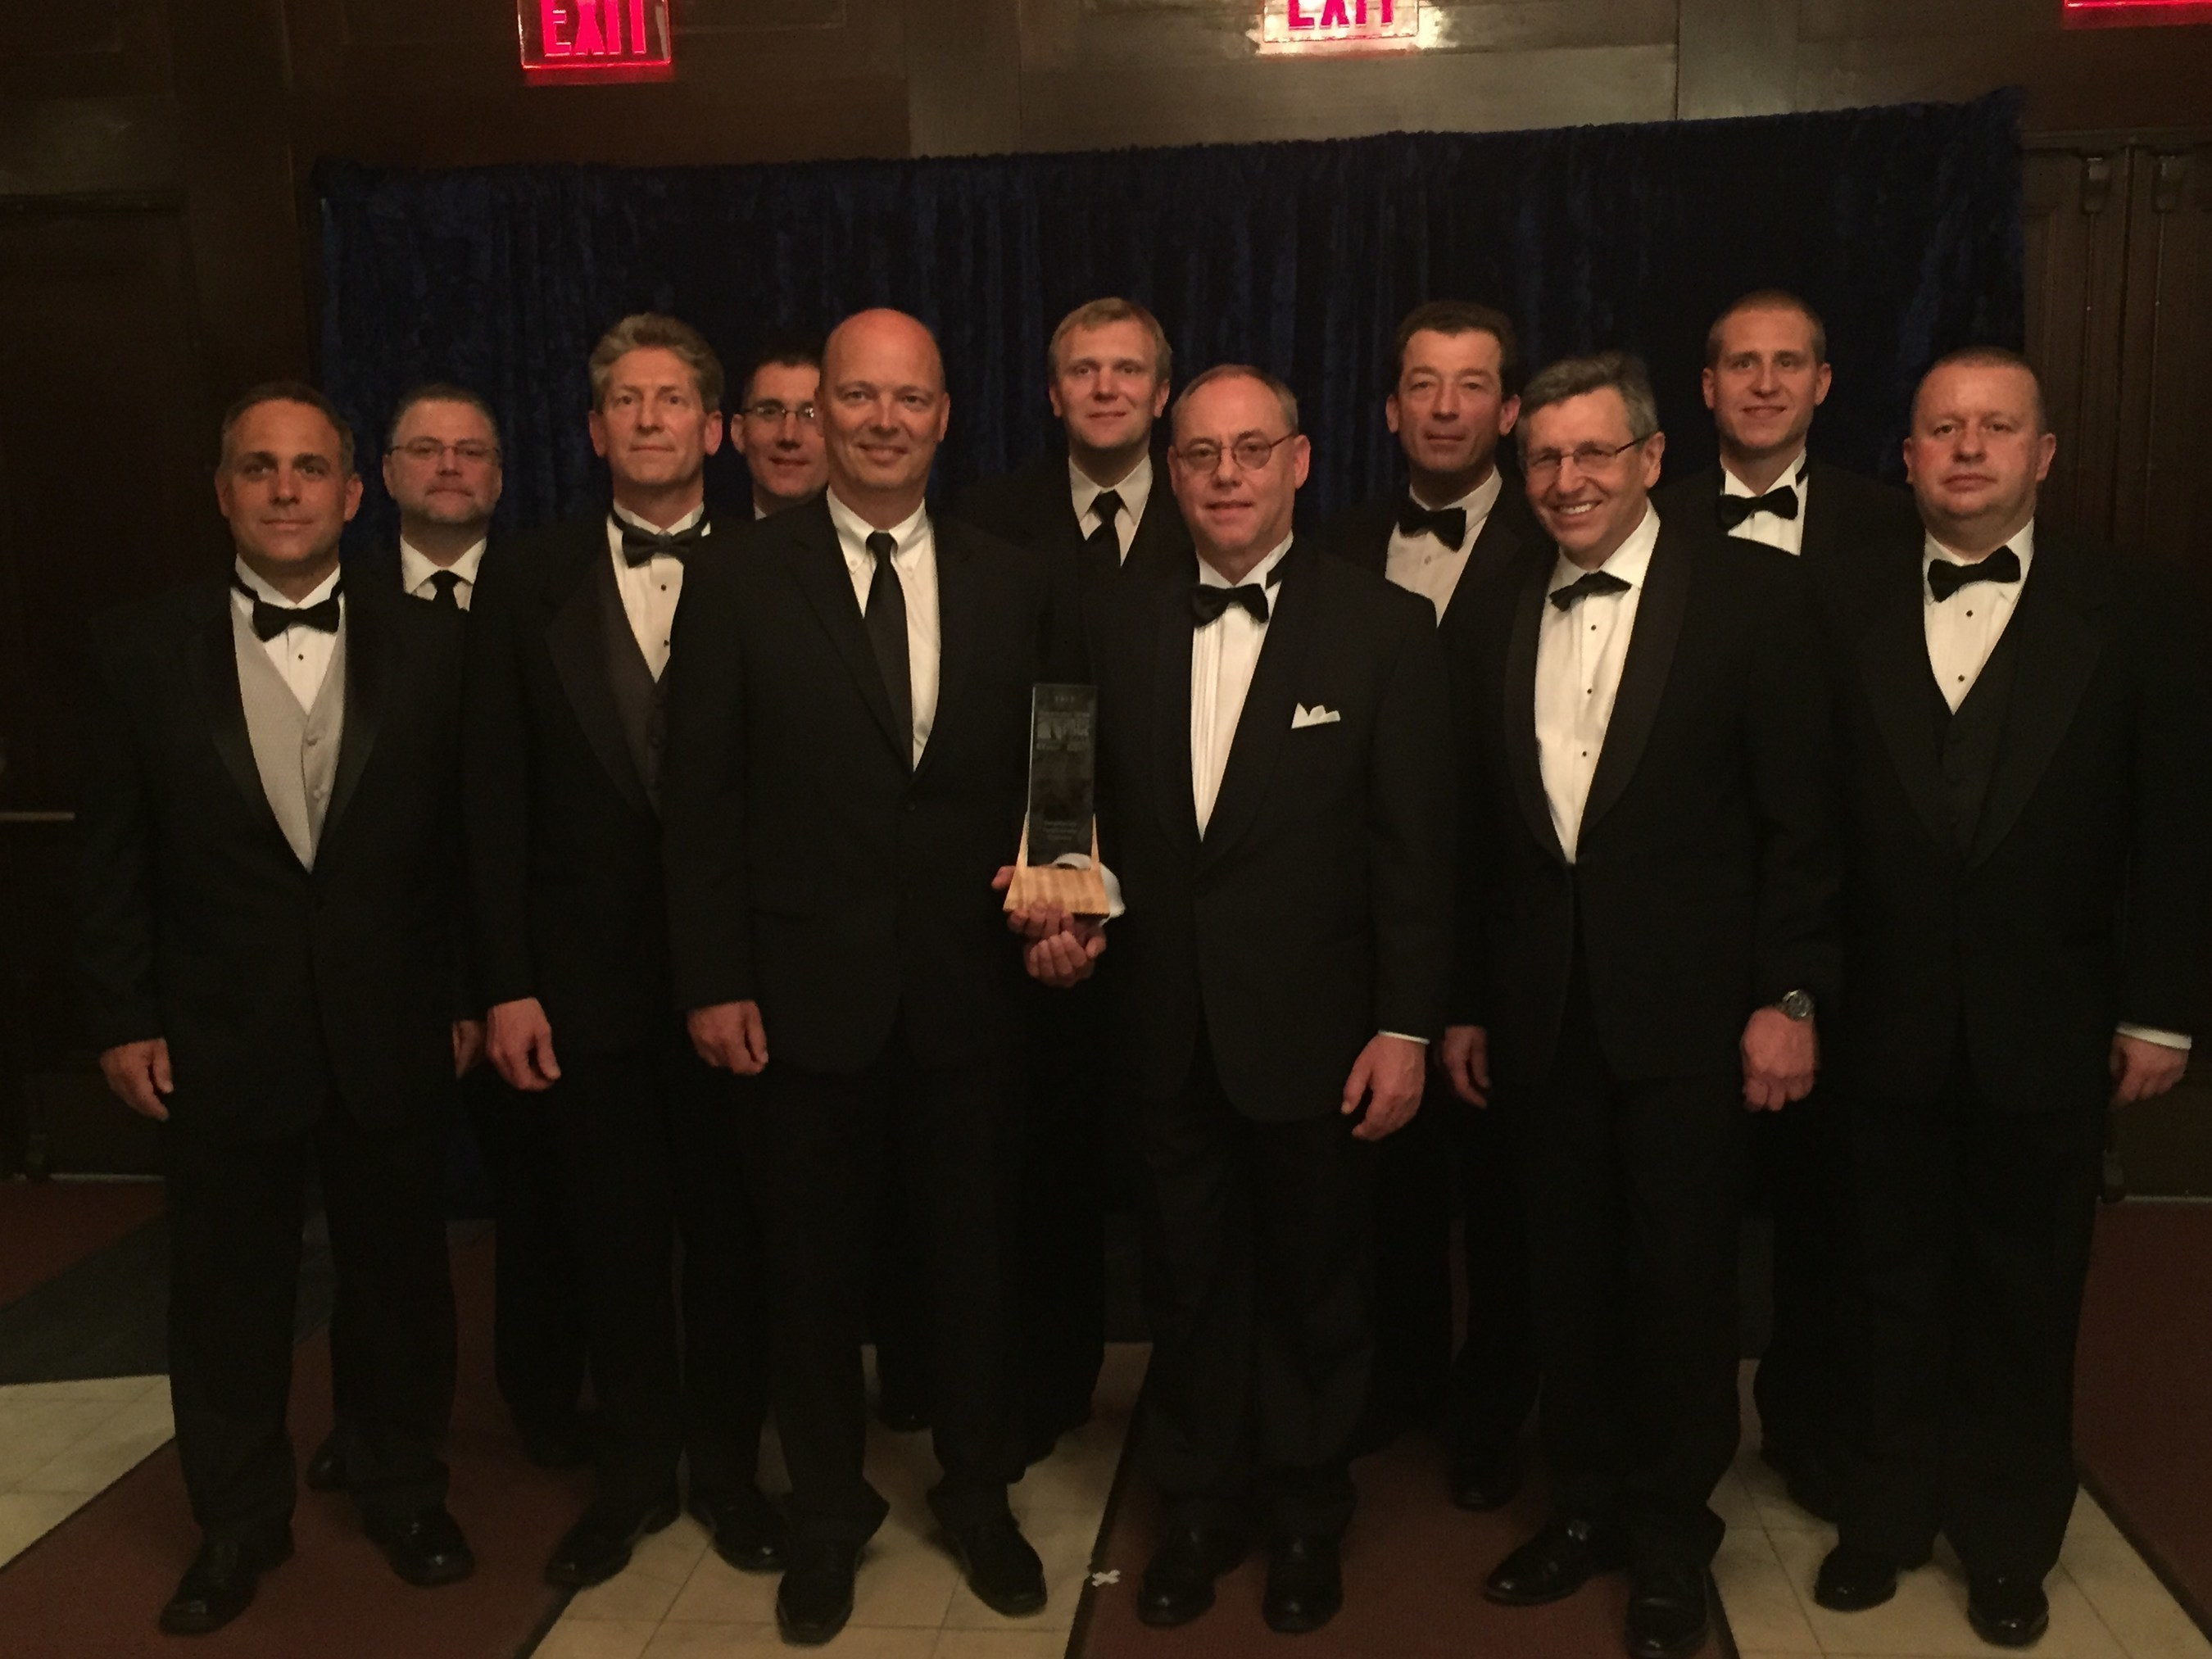 BorgWarner received a 2015 Automotive News PACE Award for its first-to-market front cross differential (FXD) technology, an innovation that provides automakers with a cost-effective and fuel-efficient alternative to all-wheel drive (AWD) systems. BorgWarner employees were joined by Dr. Burkhard Huhnke, General Manager R&D - Product Engineering, Volkswagen Group of America (left of award).